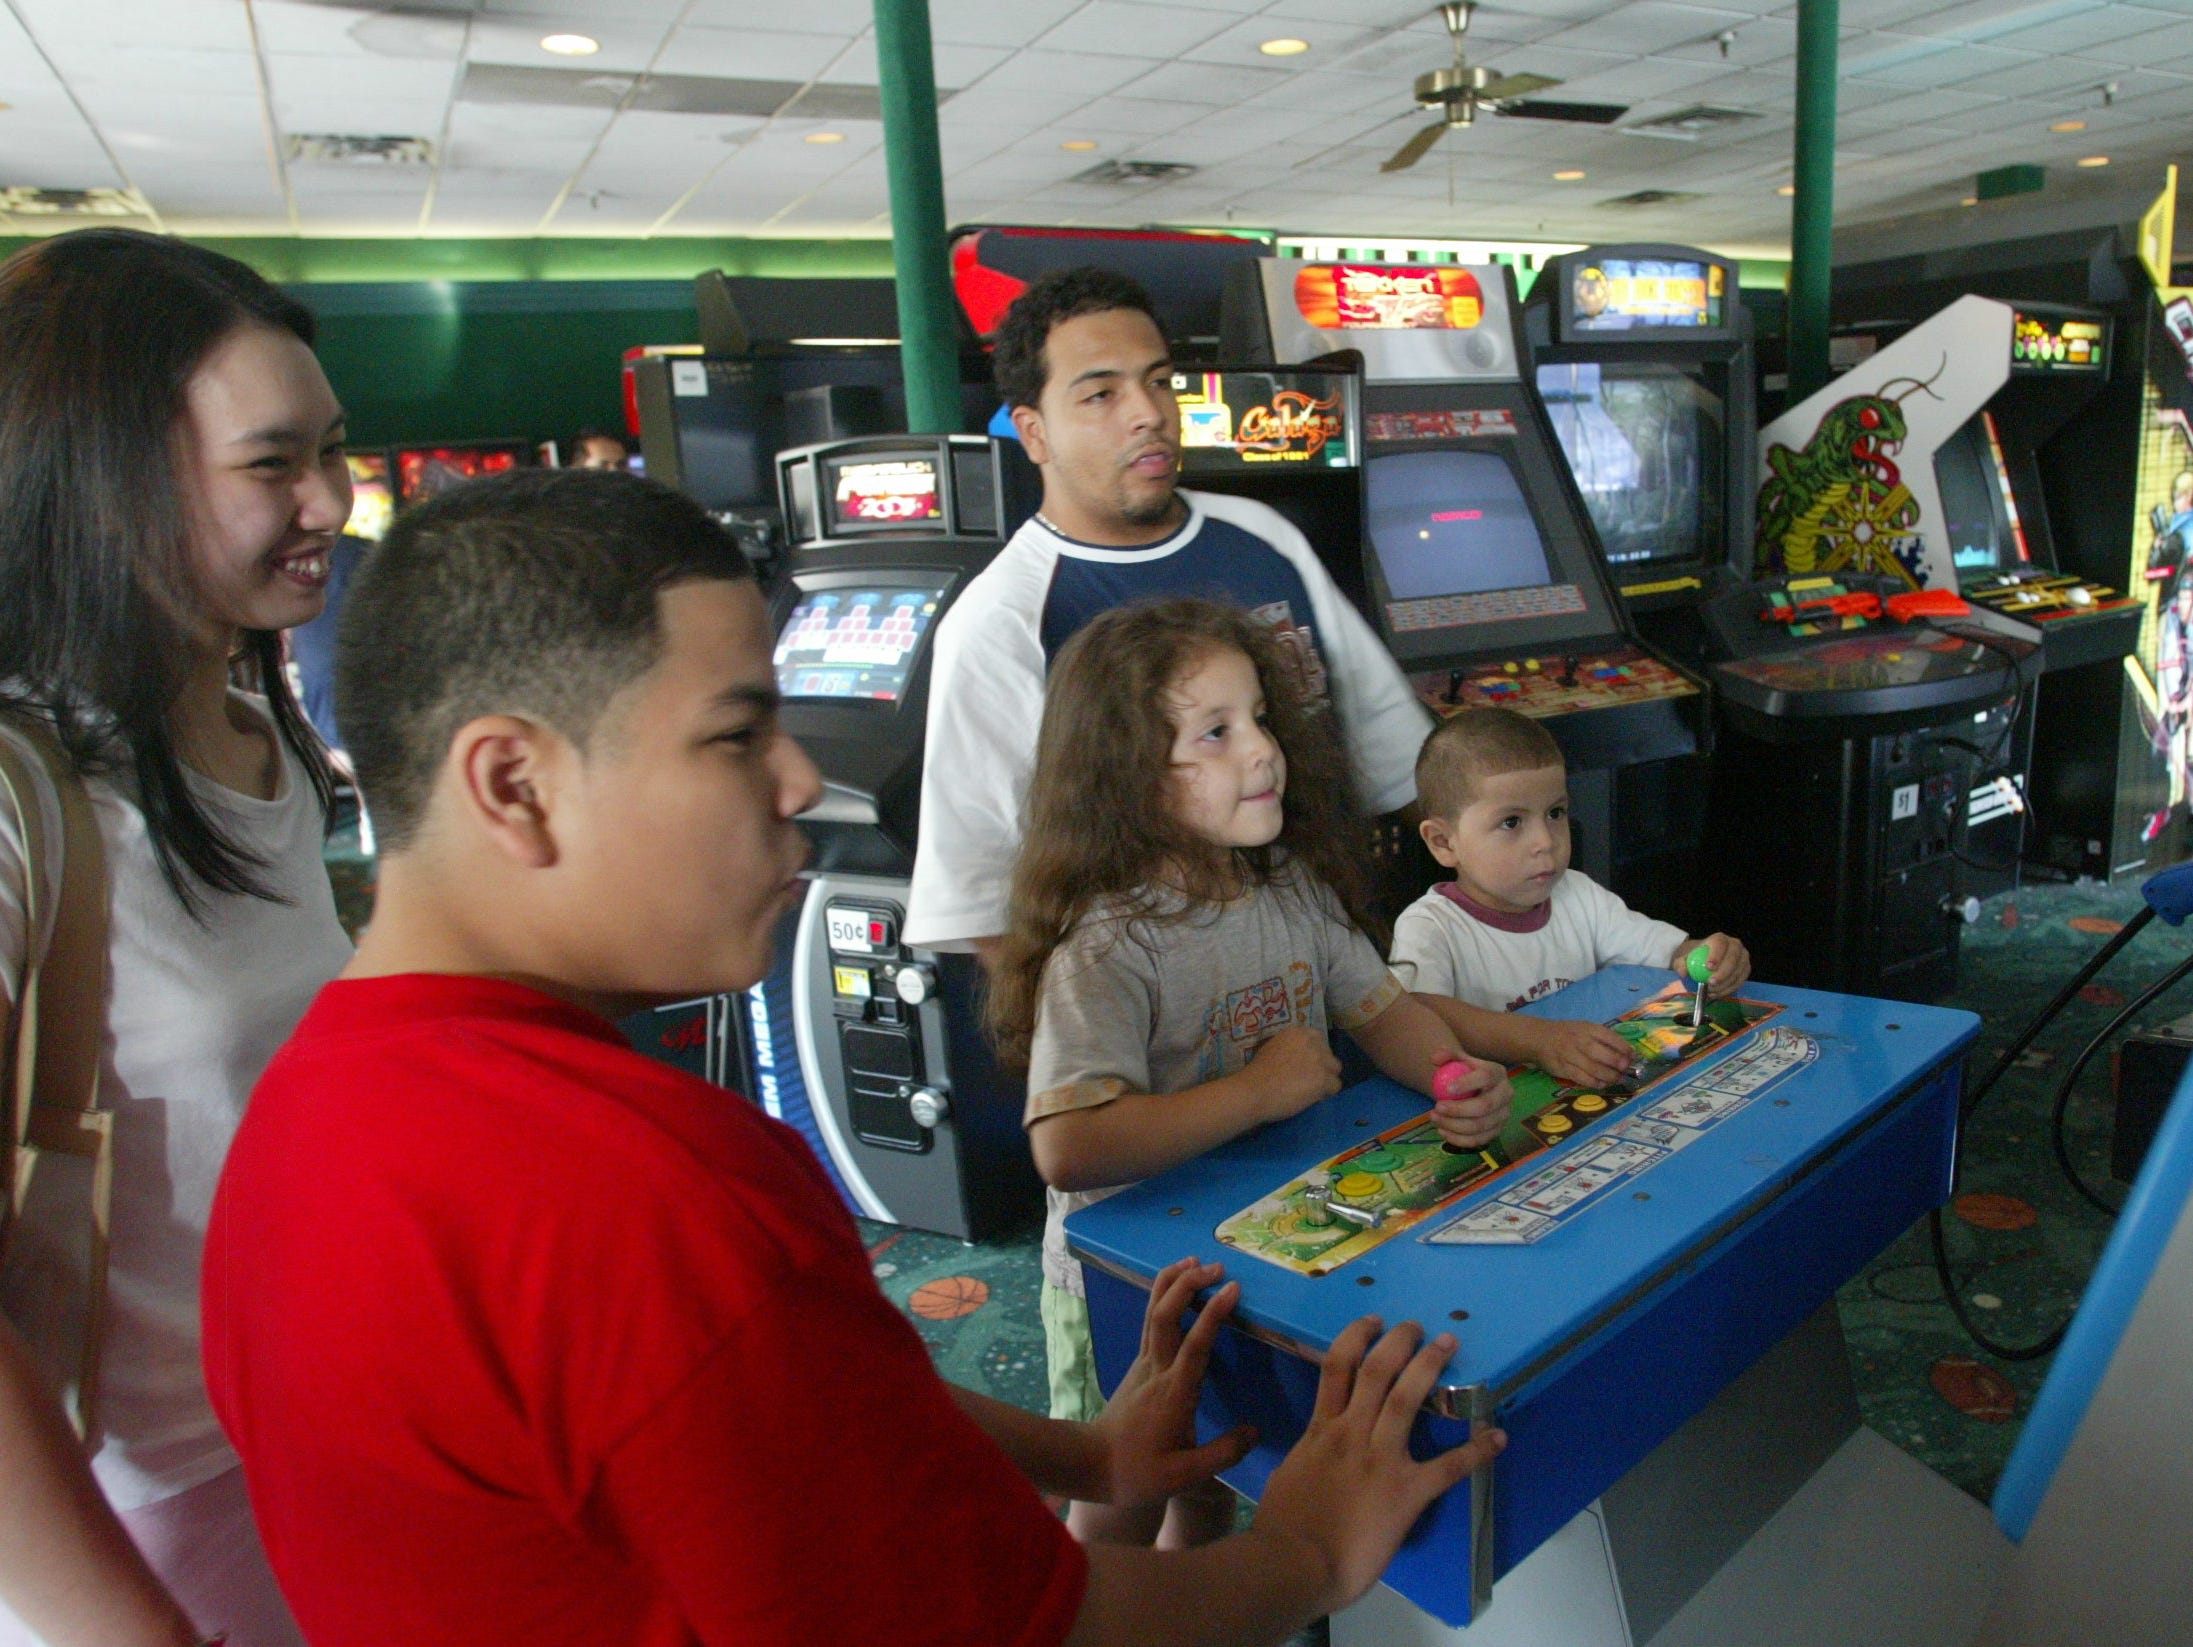 Children play a game at Fun N Games at Willowbrook Mall.